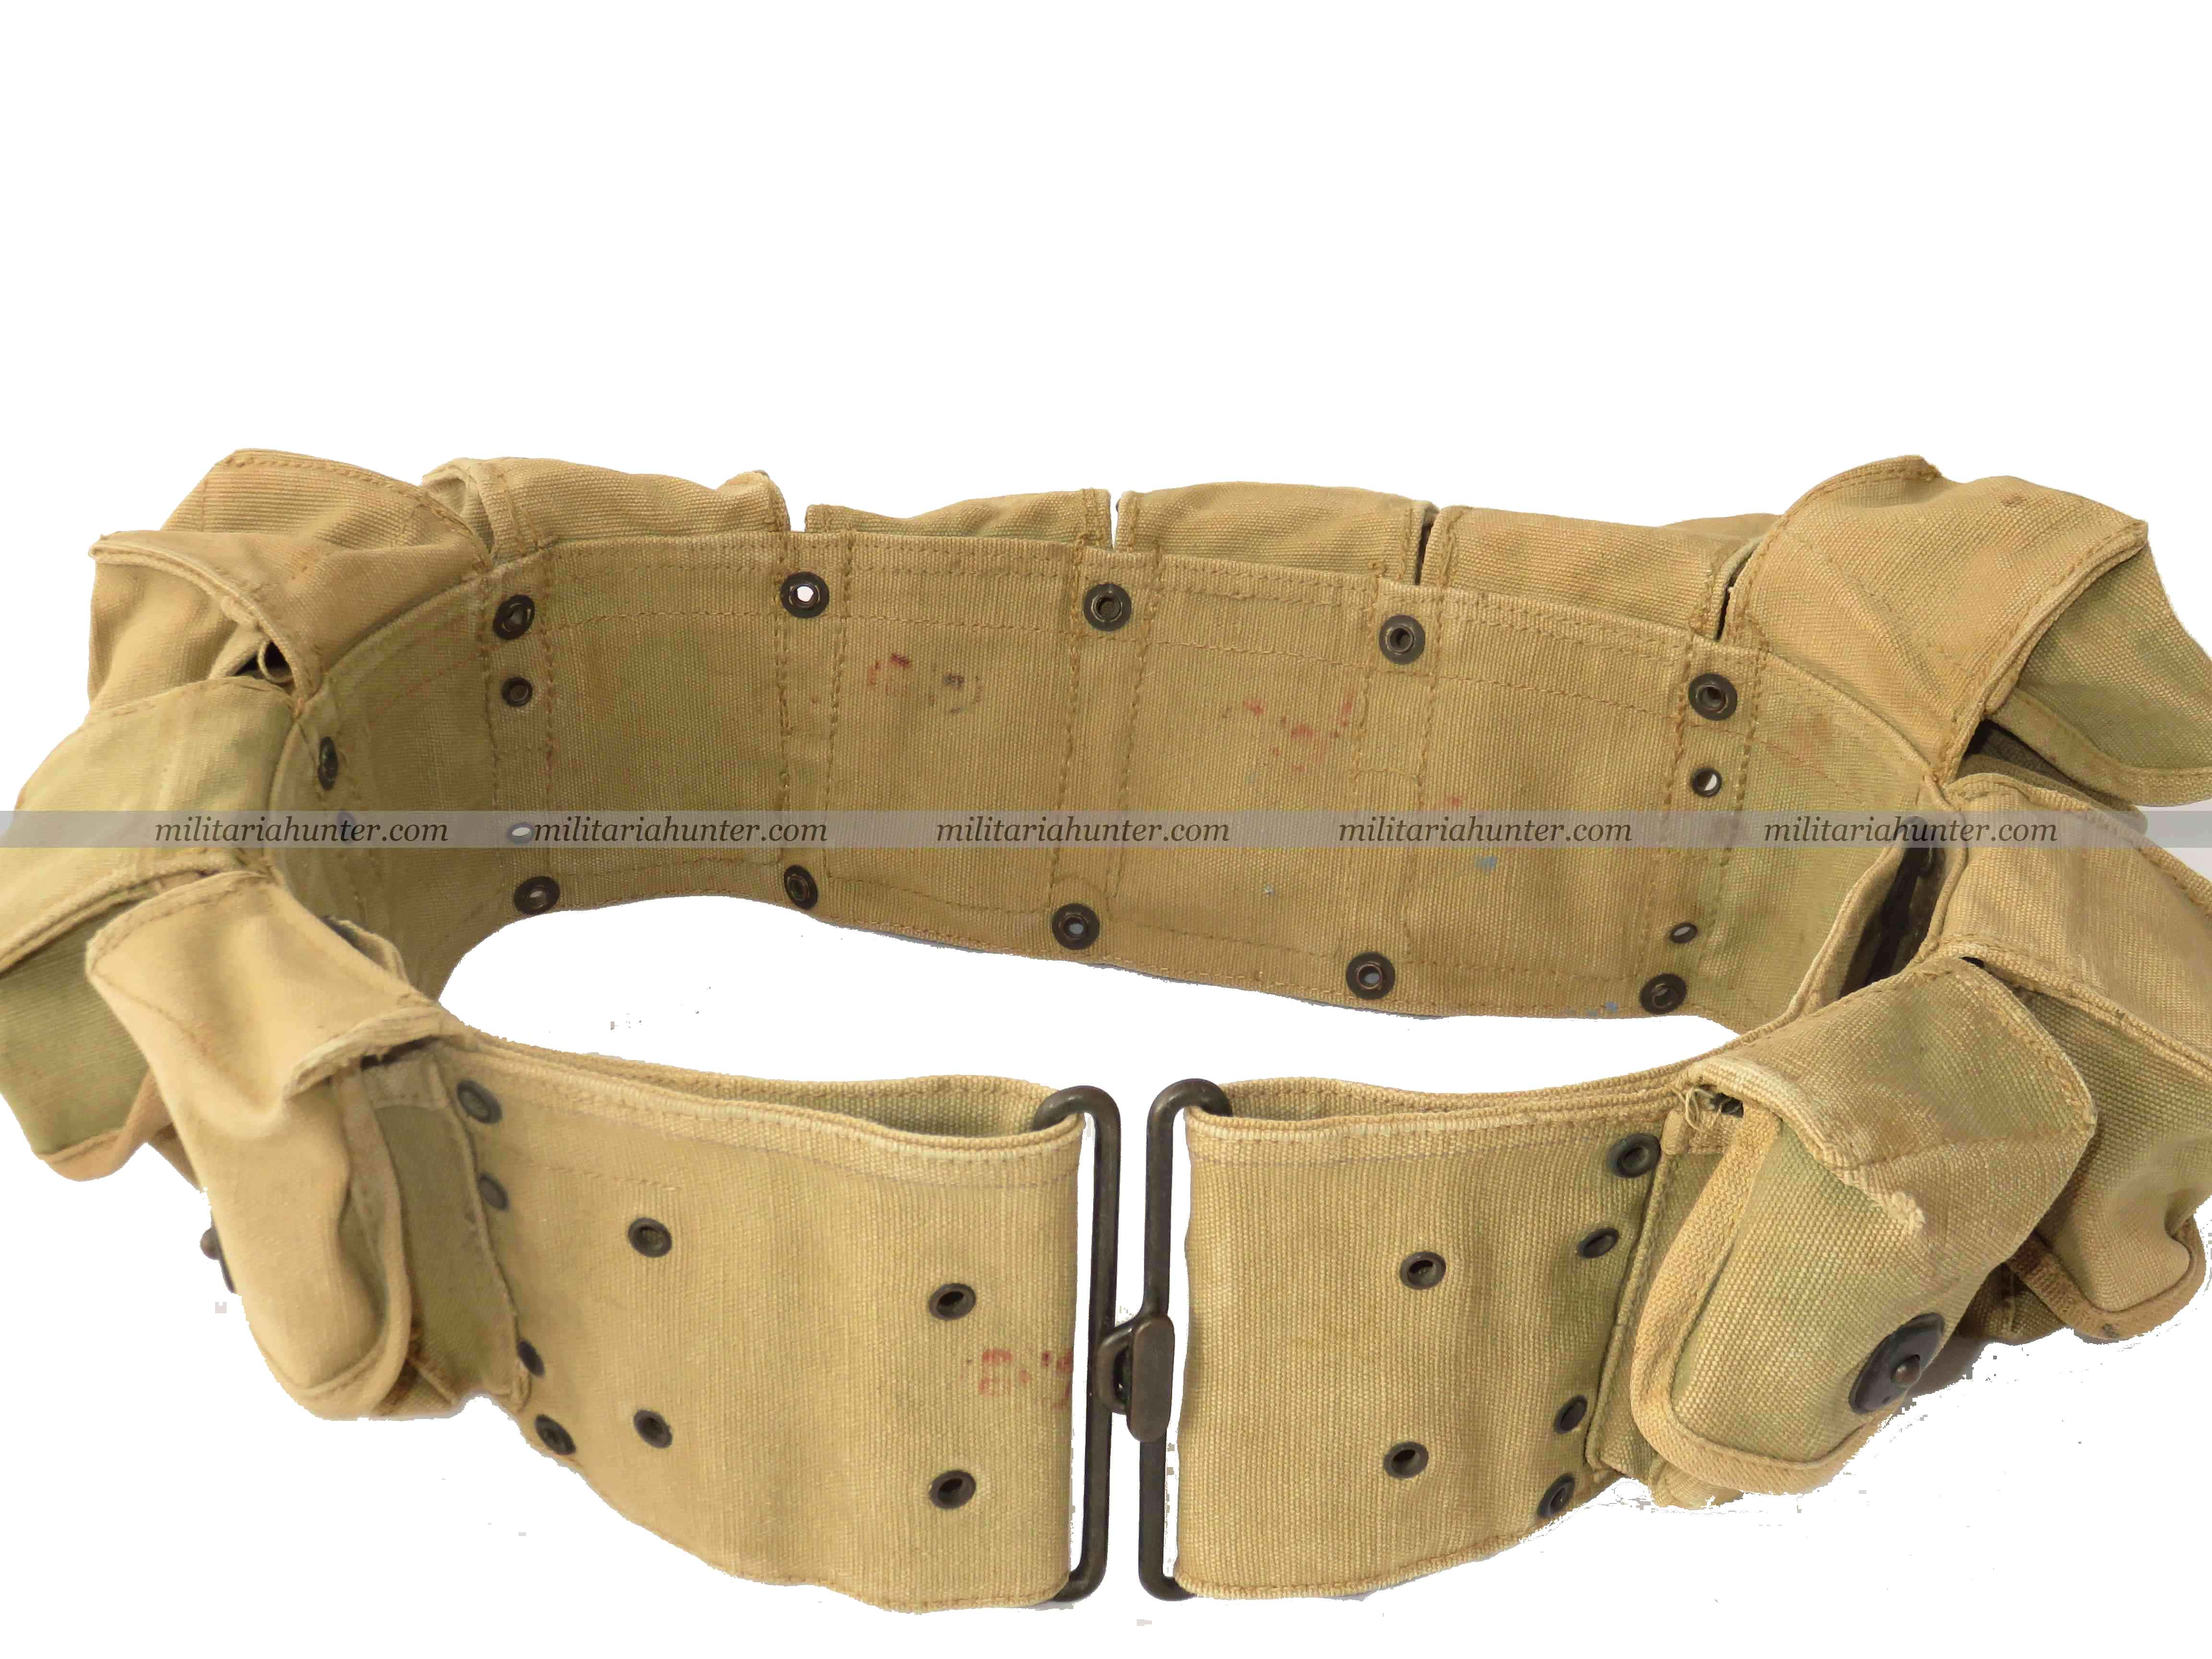 militaria : WW1 U.S. Model 1917, 10-Pocket Enlisted Man's Medical Belt